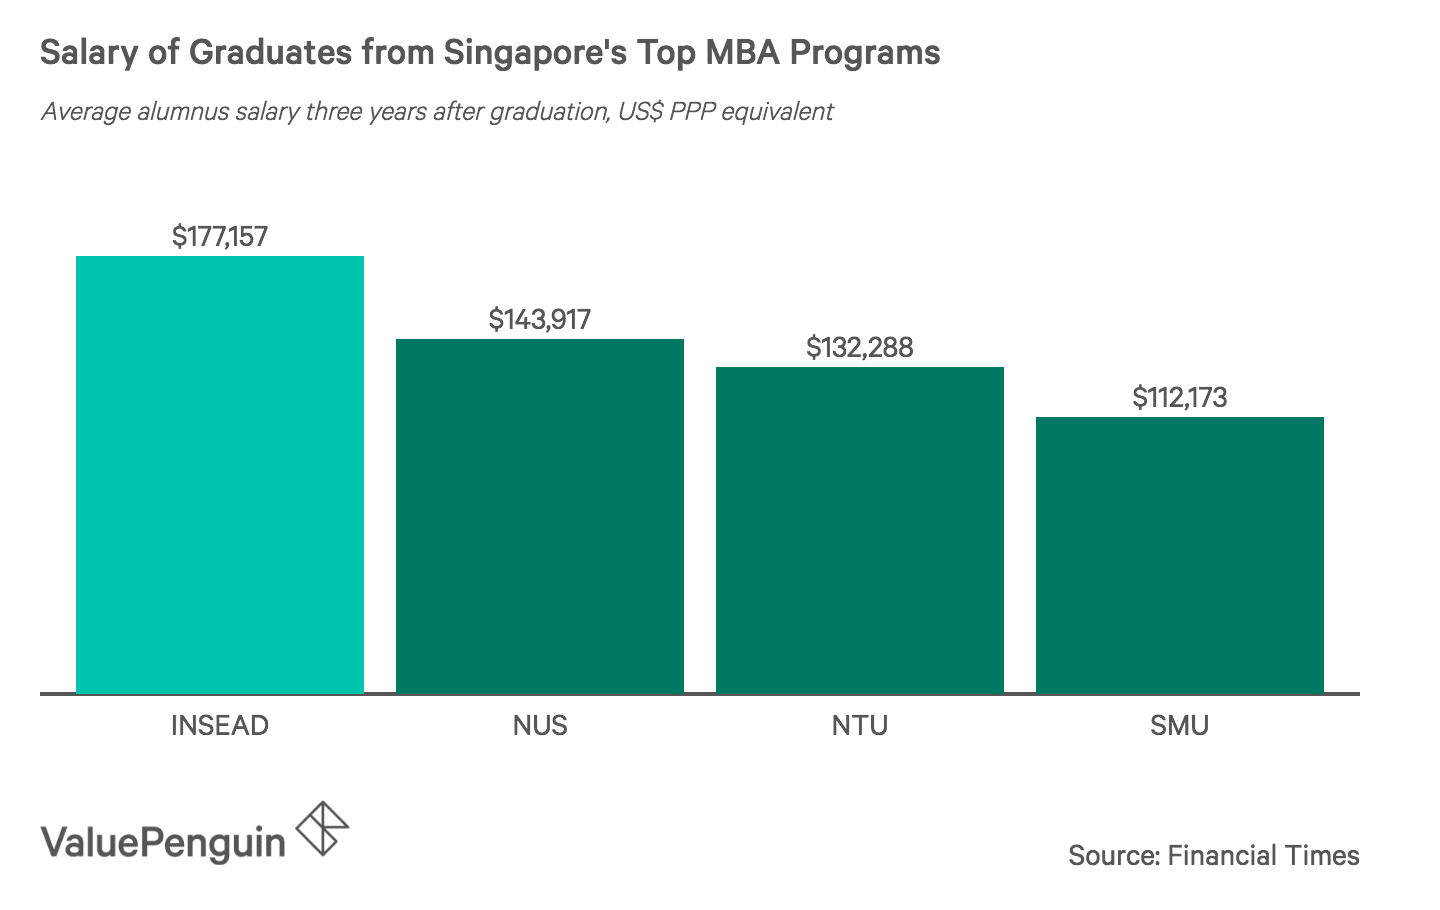 Salary of Graduates from Singapore's Top MBA Programs